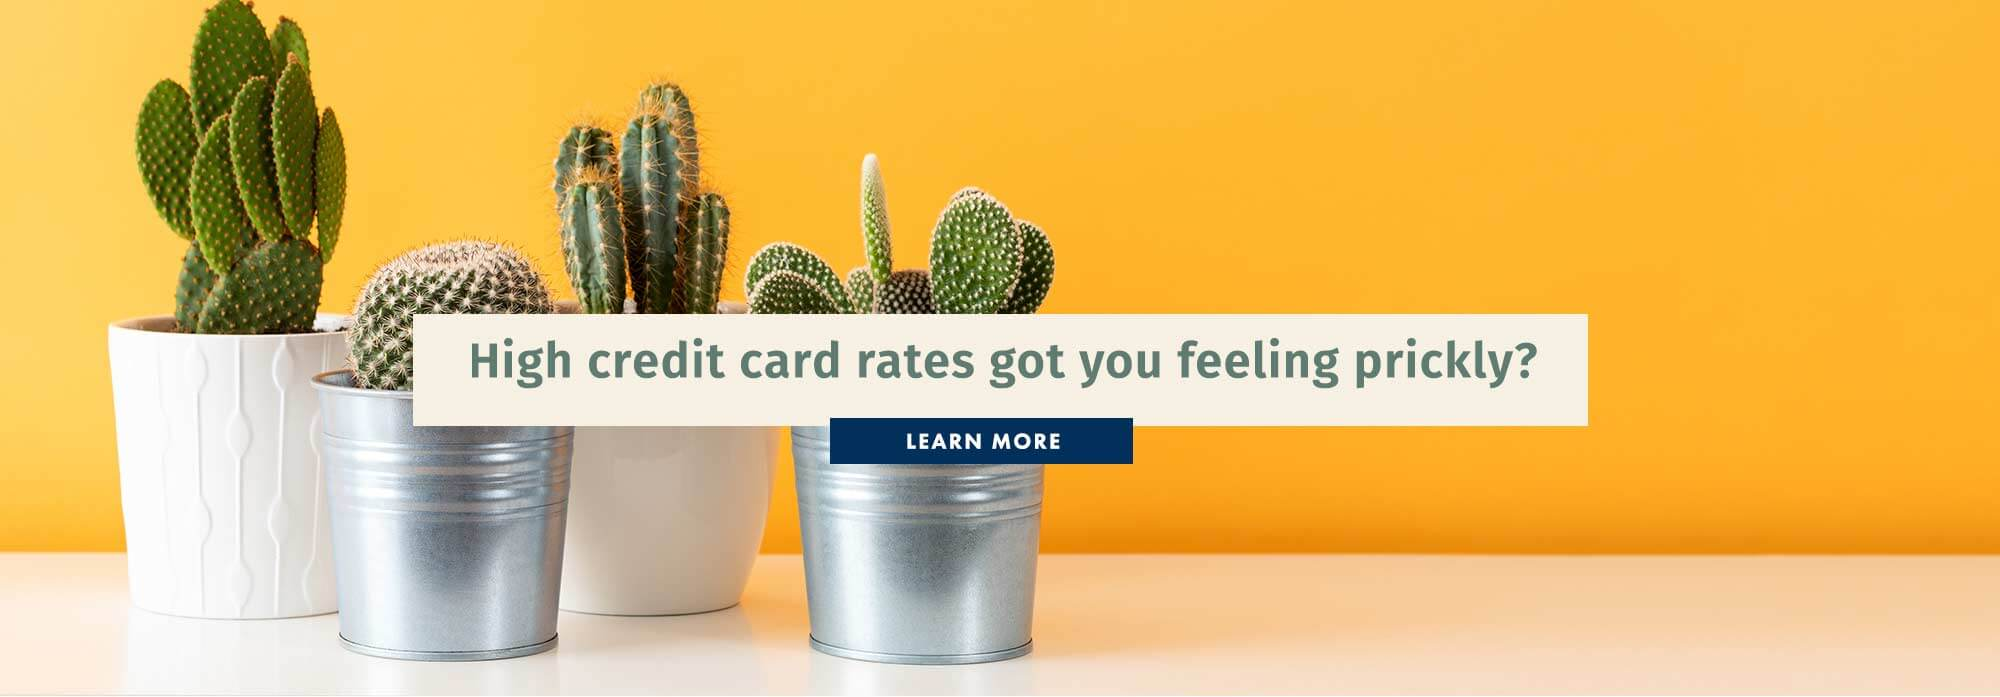 High rates got you feeling prickly?